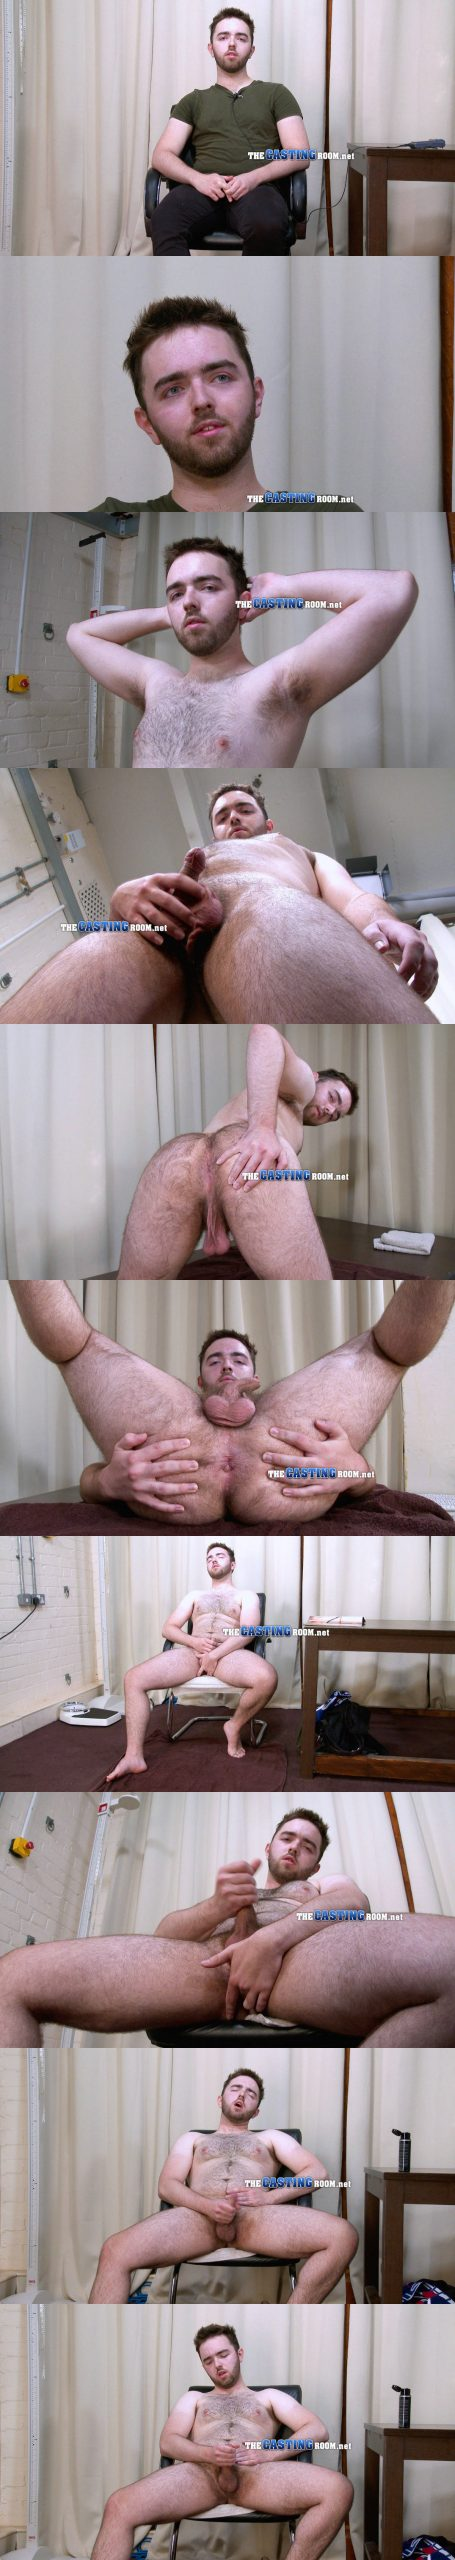 straight guy evan stripping naked and wanking porn casting